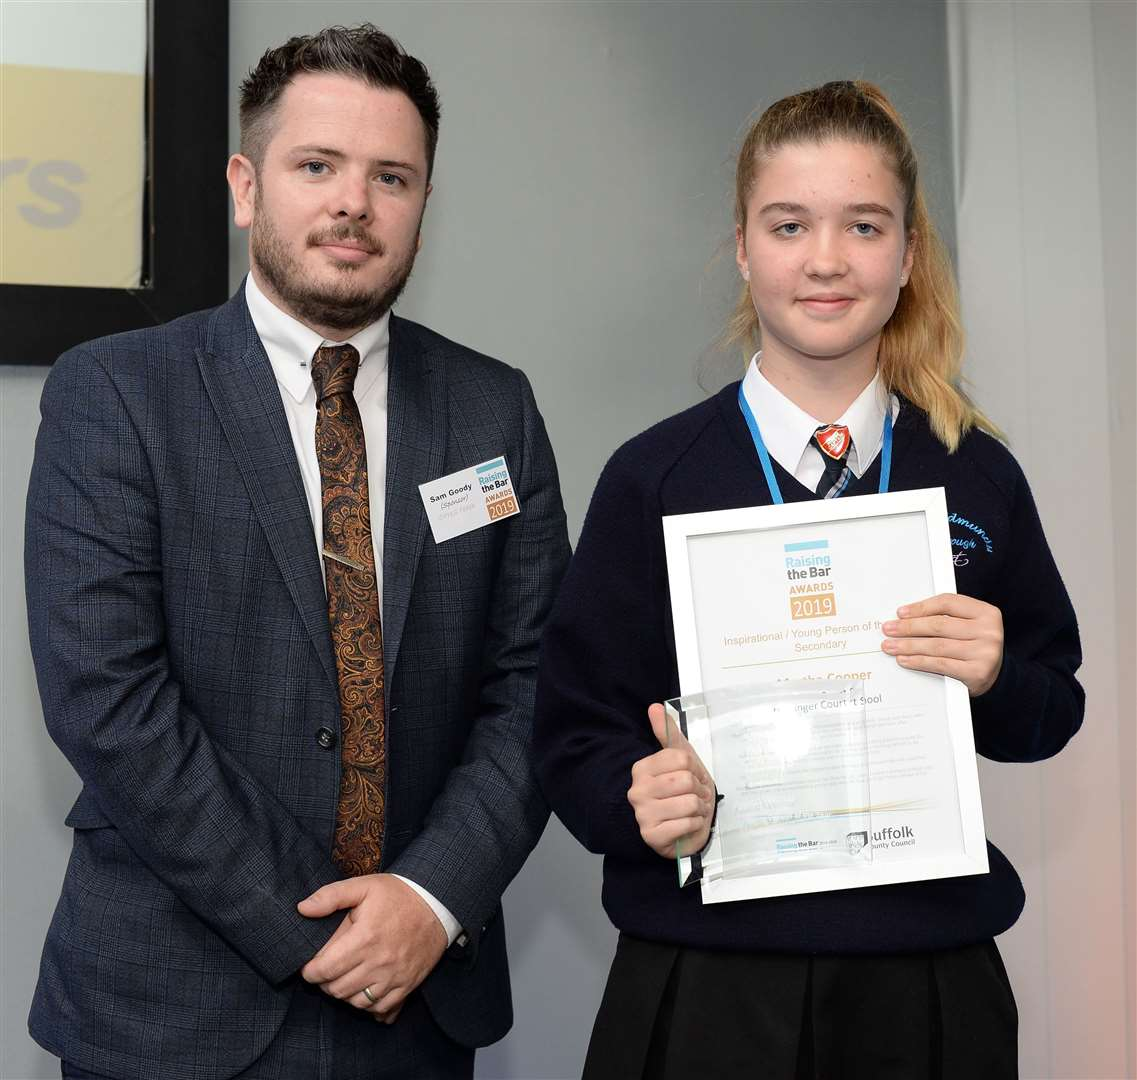 Martha Cooper From Horringer Court Middle School in Bury St Edmunds who won the Inspirational Young Person of the Year award